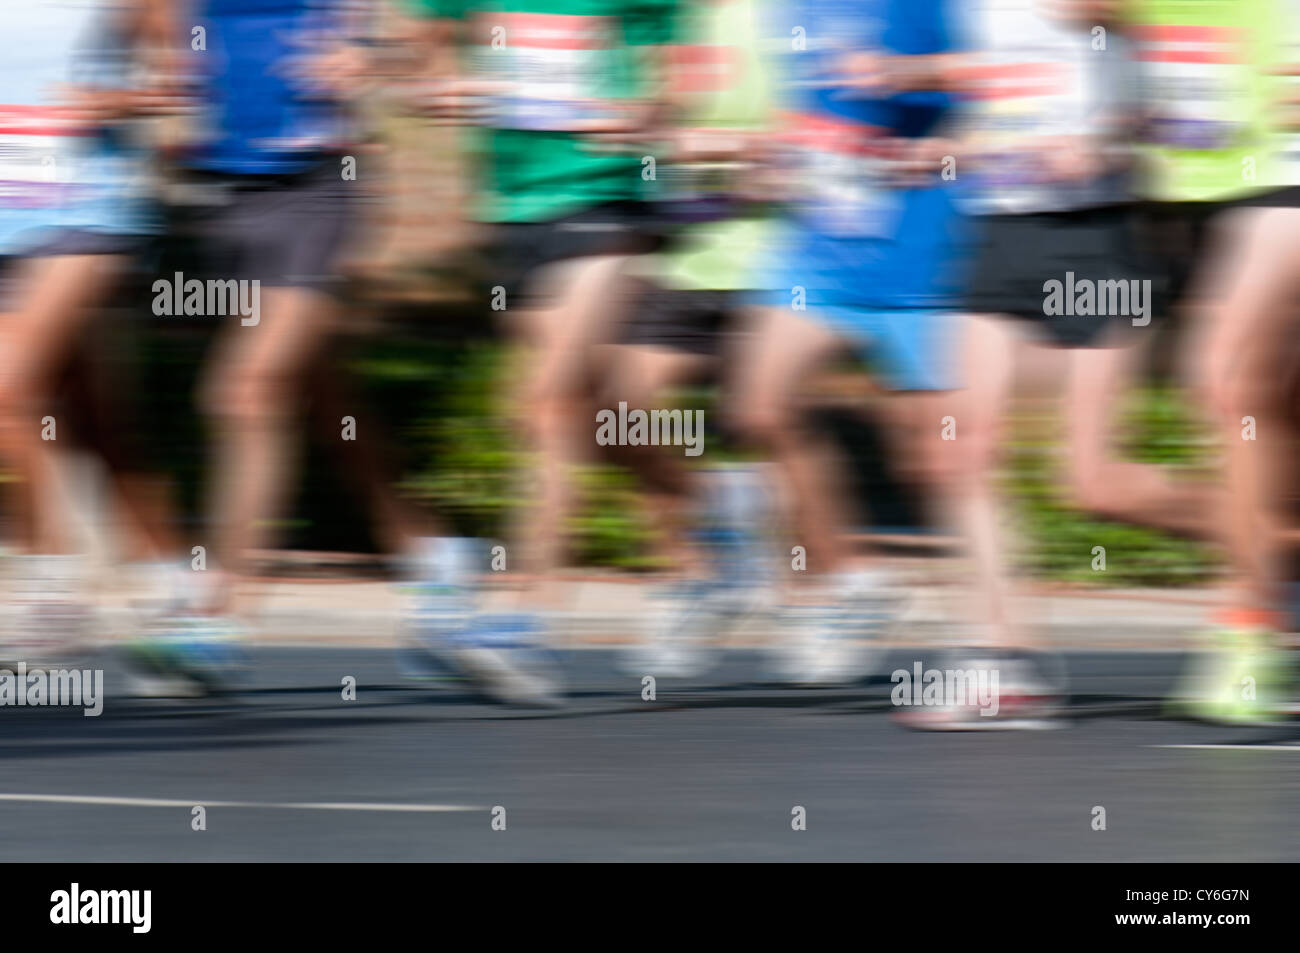 Group of marathon racers running with heavy motion blur applied - Stock Image